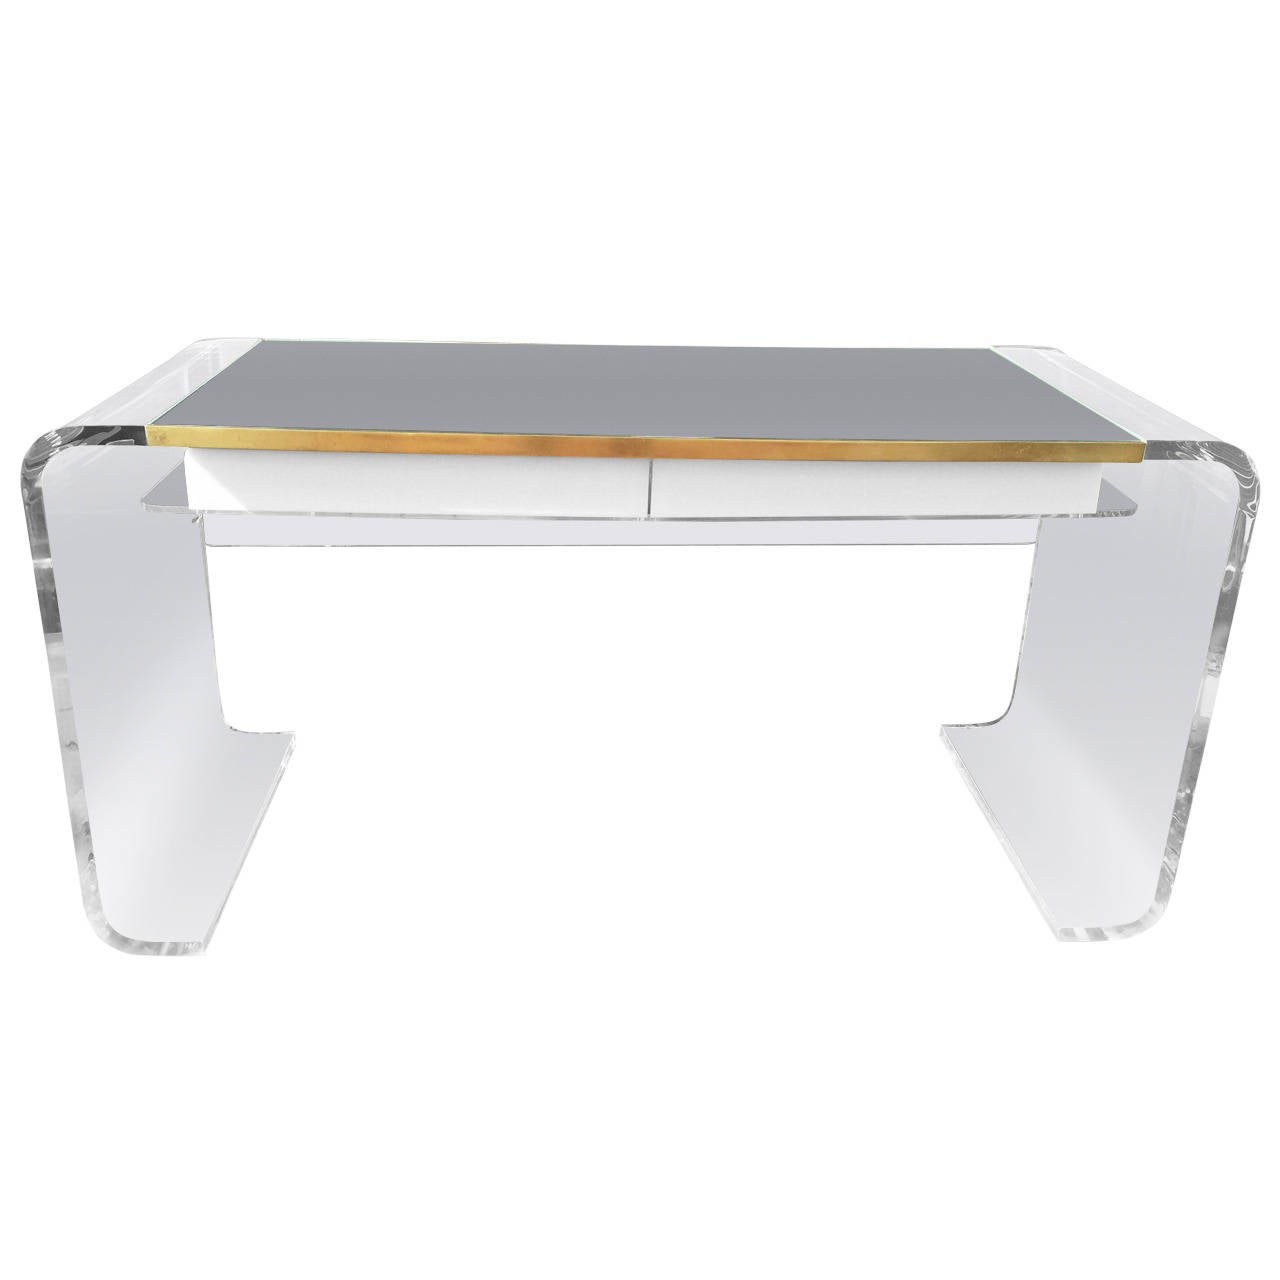 Outrageous vintage lucite waterfall desk at 1stdibs for Perspex desk